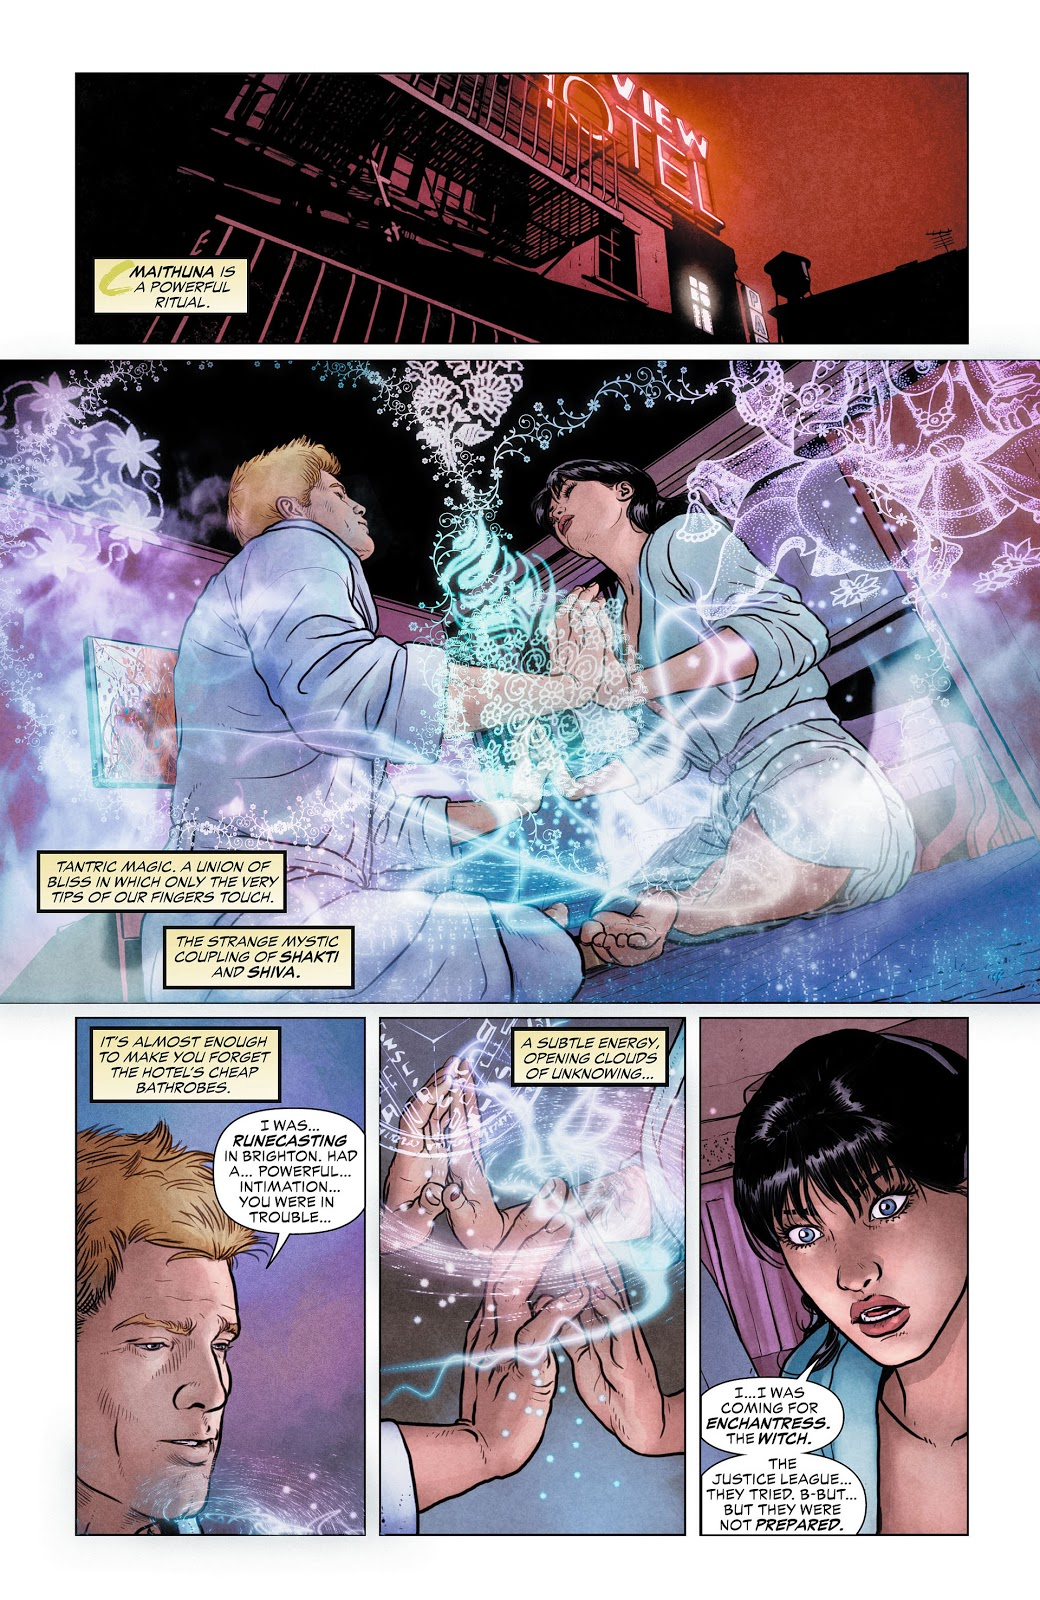 Justice League Dark V1 In the Dark review